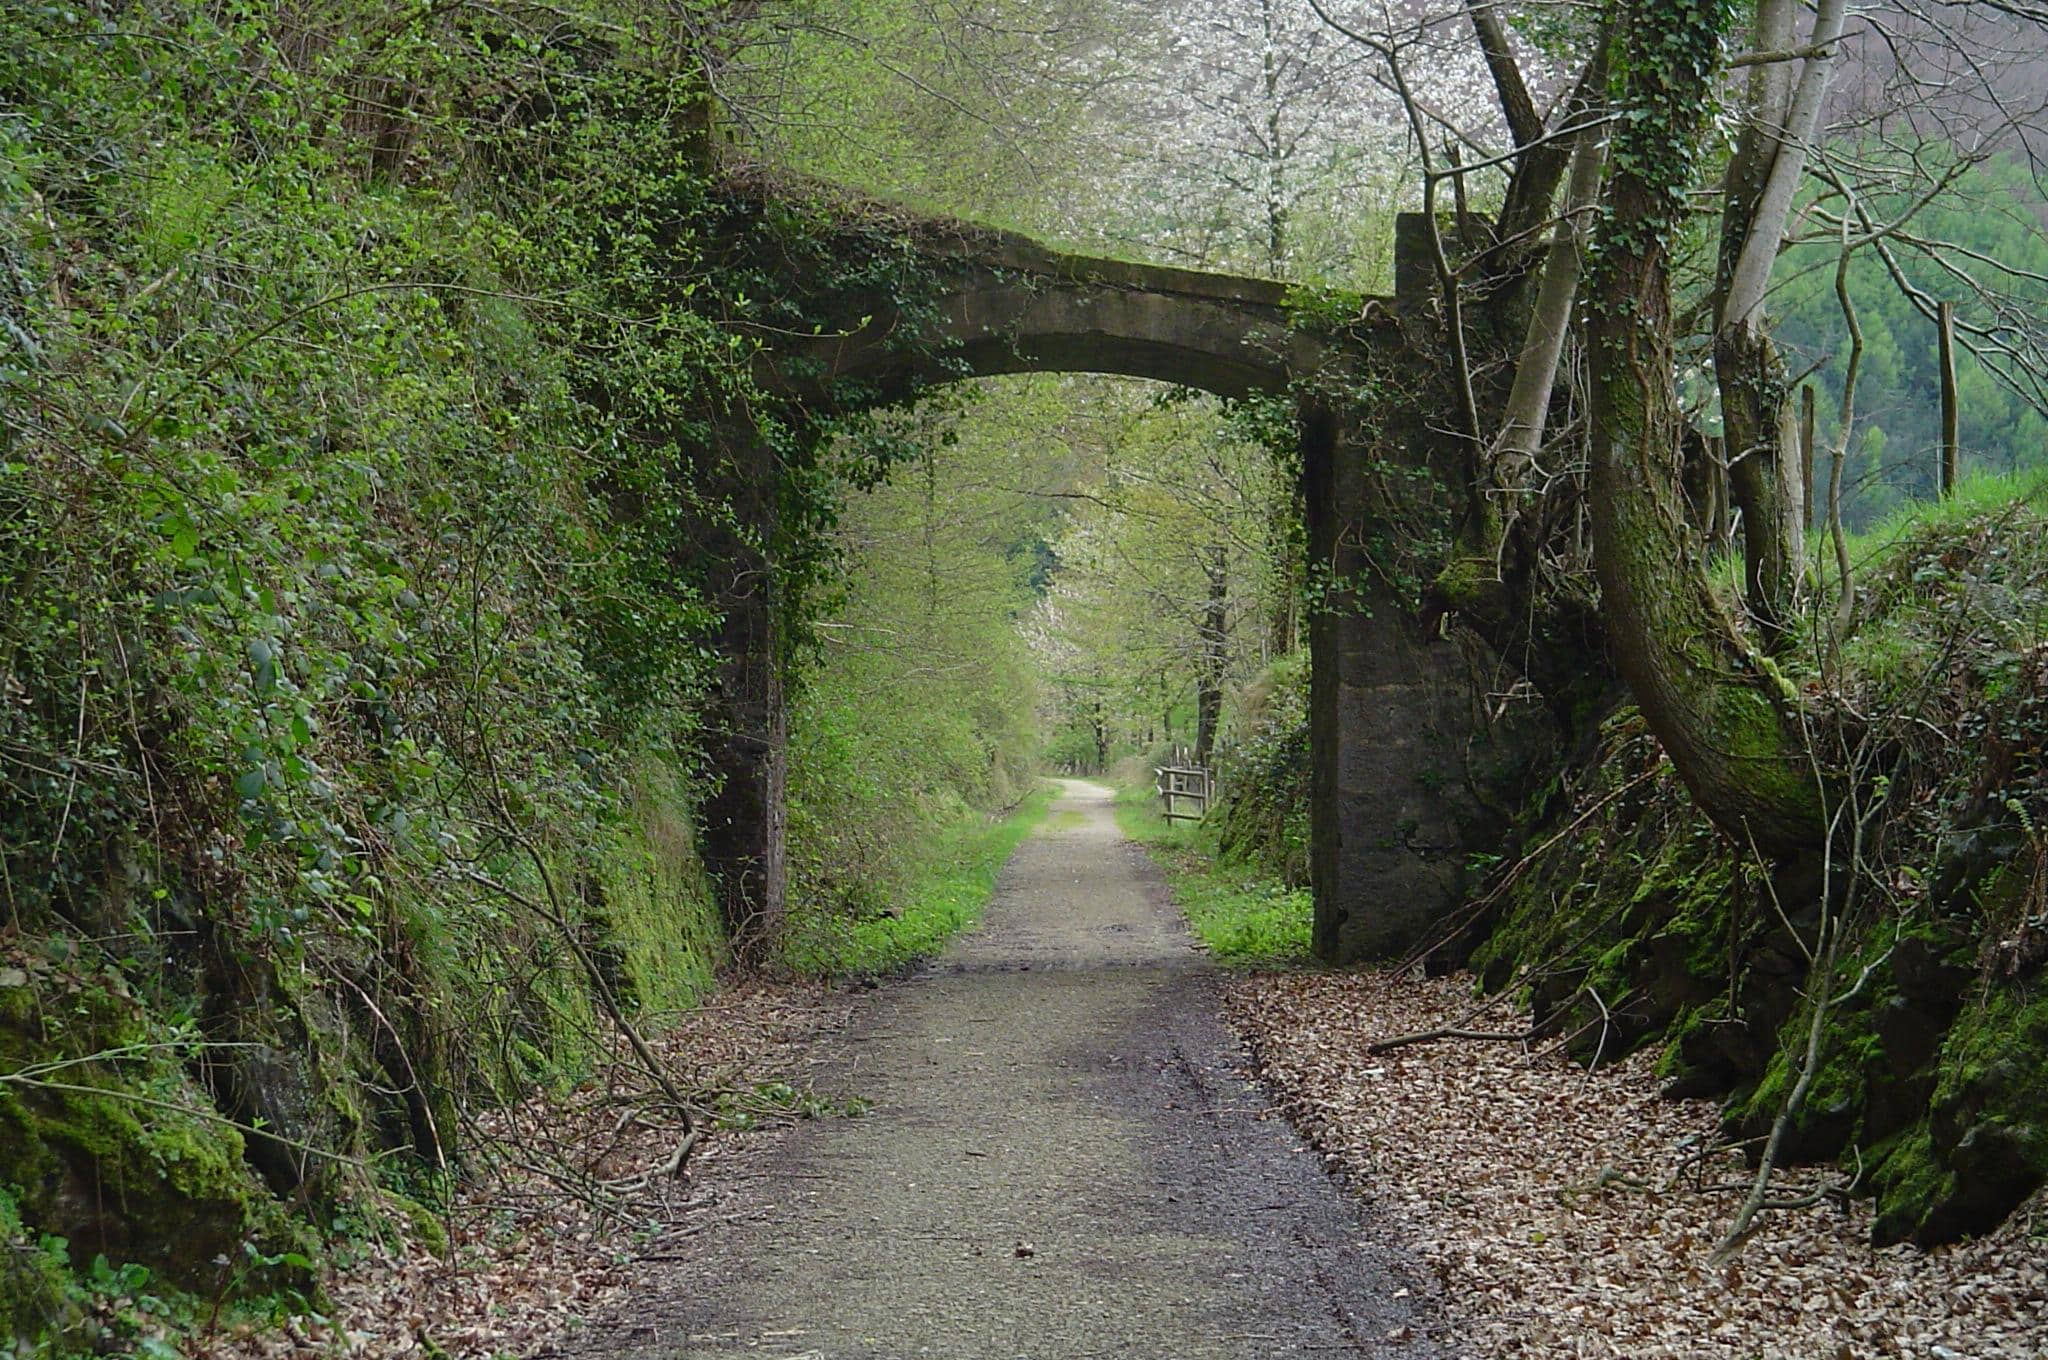 A view under stony arched bridge over a narrow paved road.